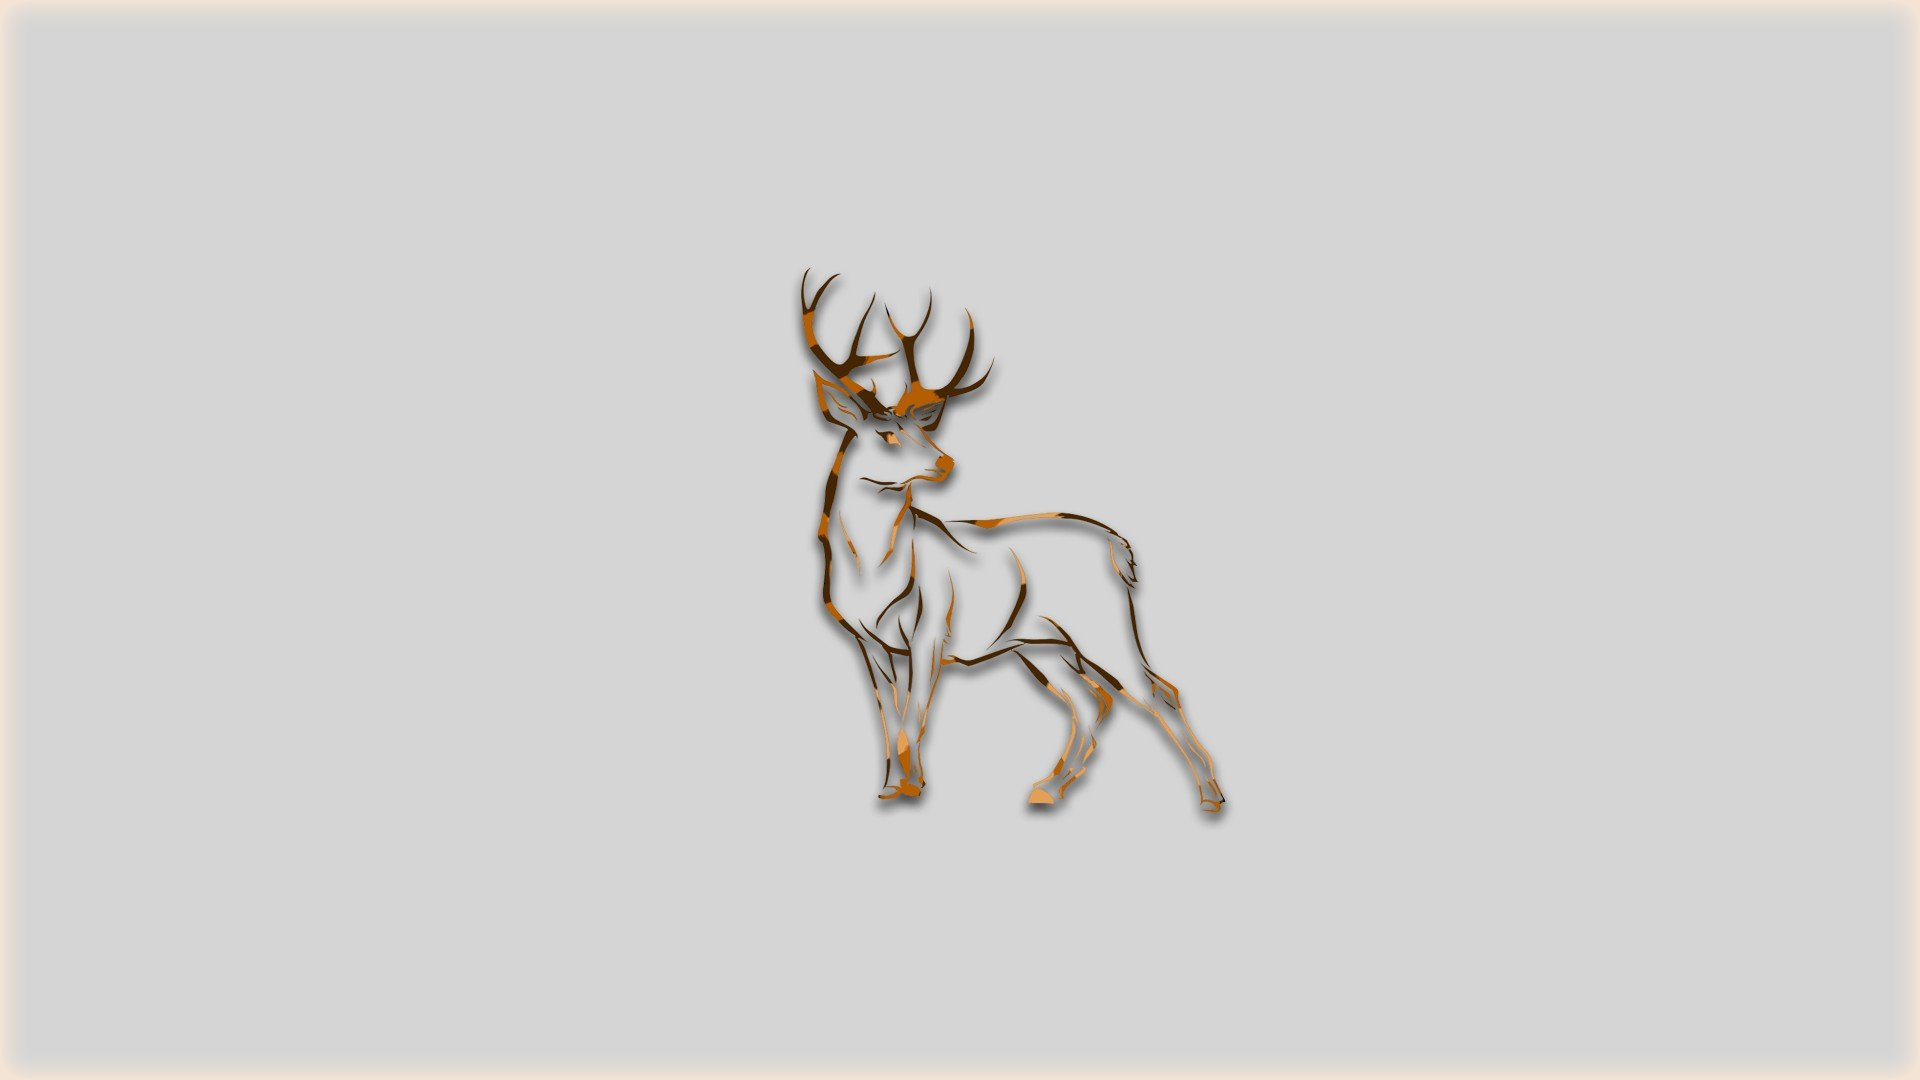 Deer simple animals brown hd wallpapers desktop and - Browning deer cell phone wallpaper ...